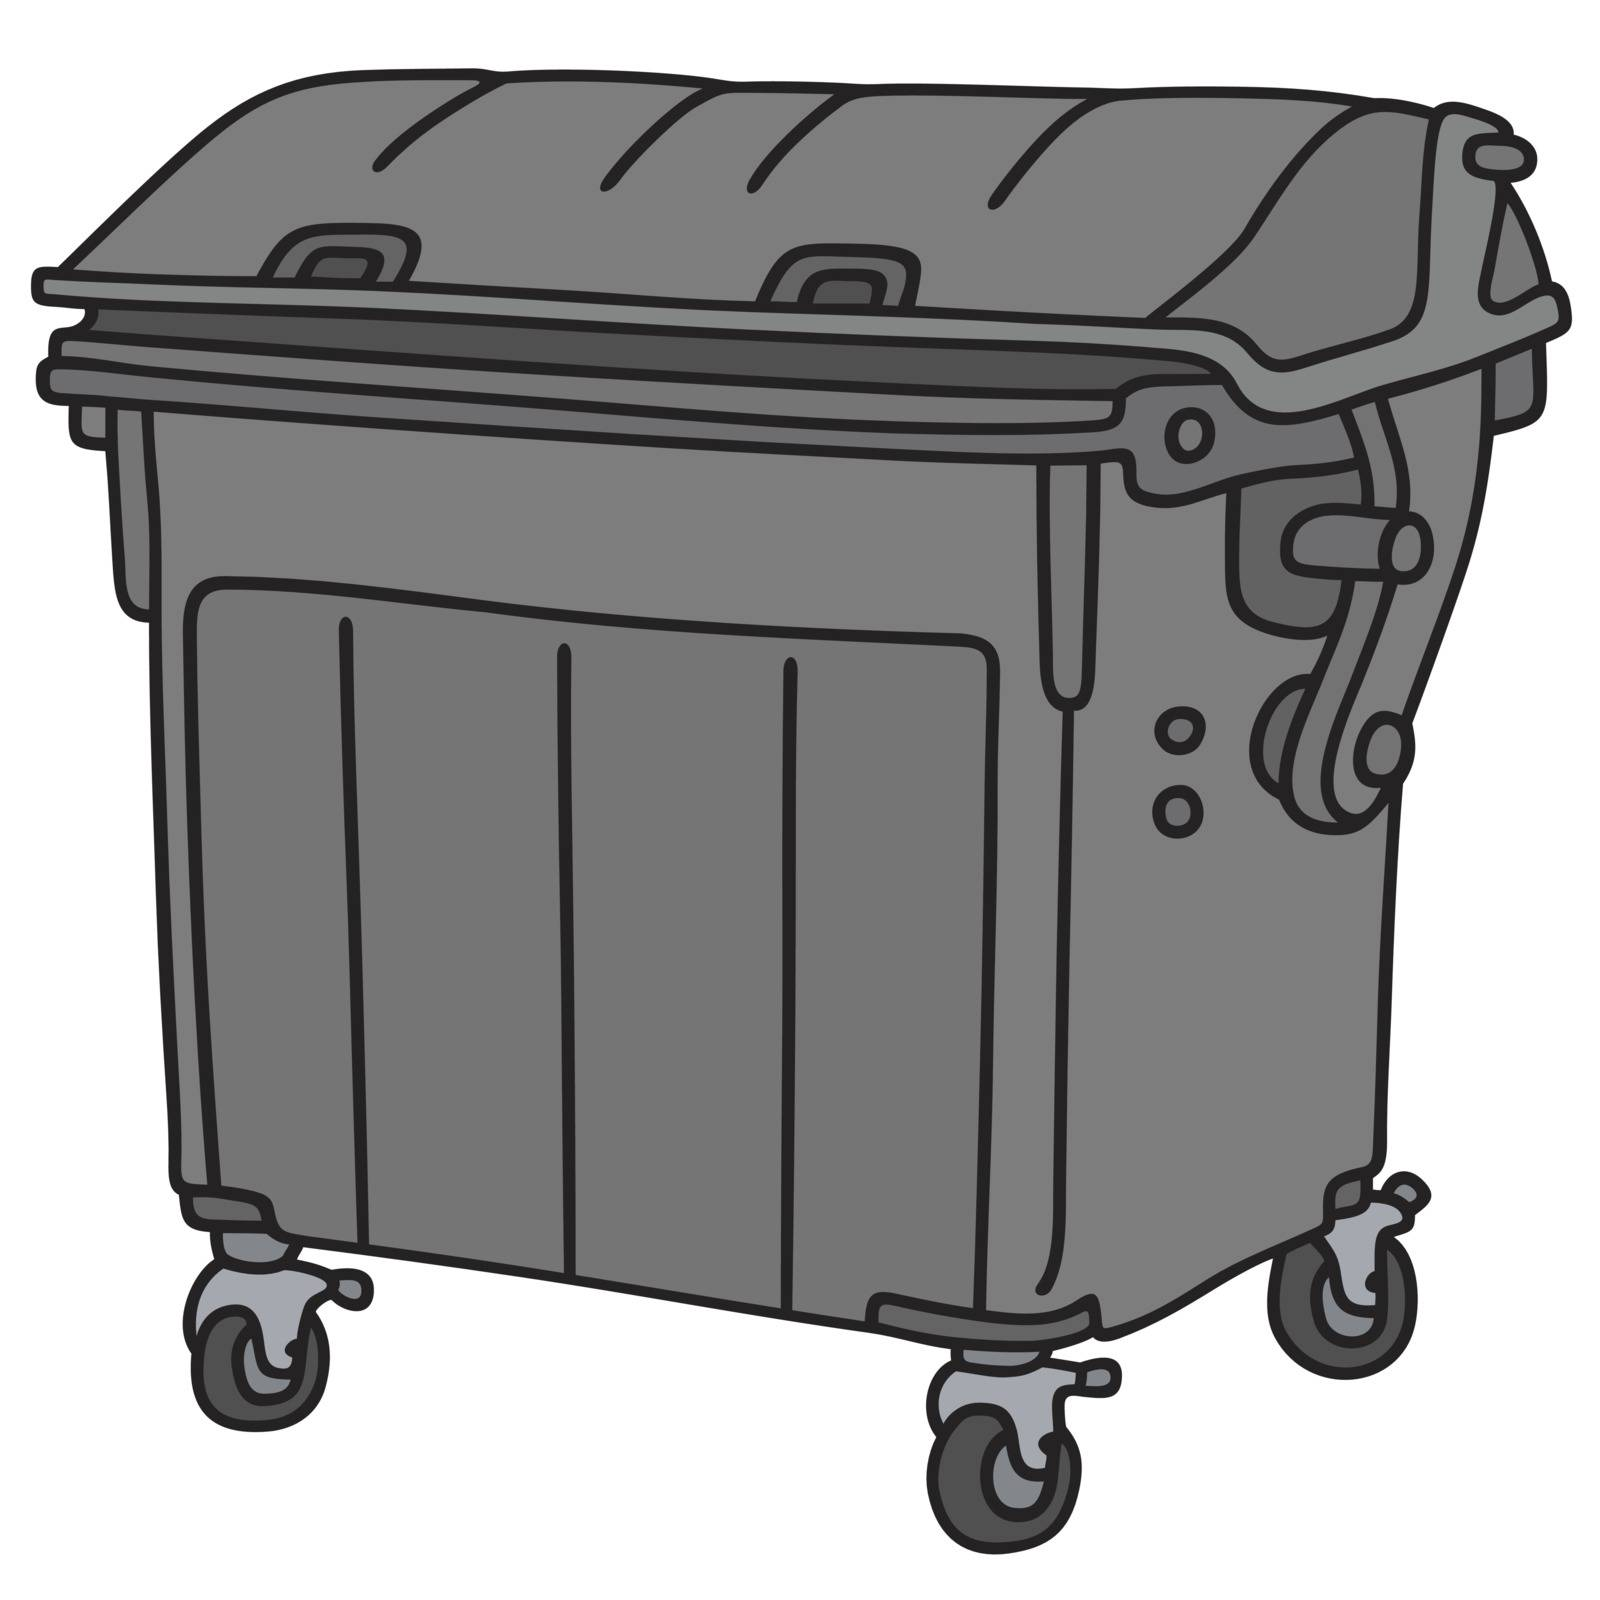 Hand drawing of a black plastic garbage container